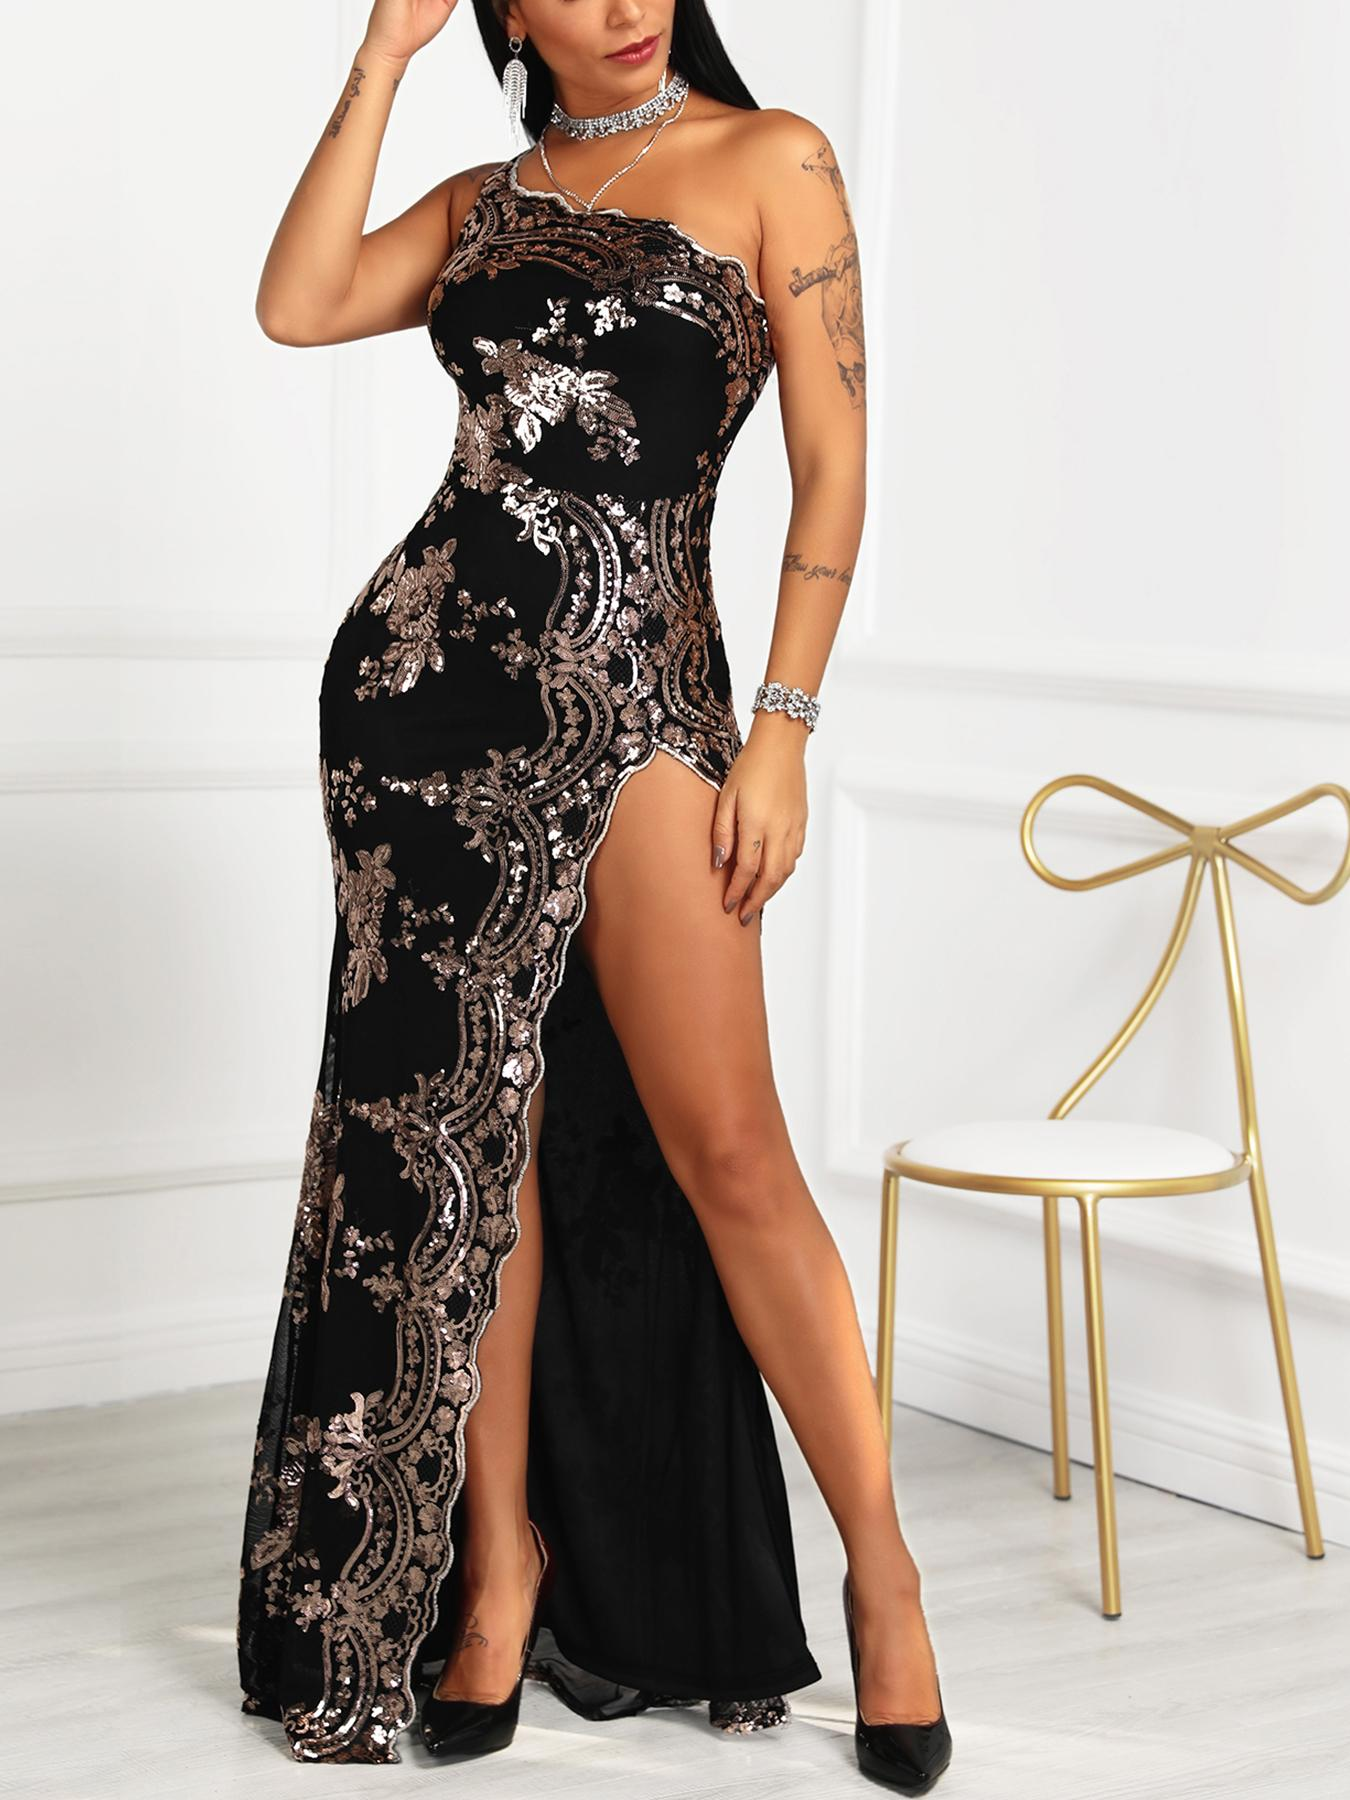 joyshoetique / One Shoulder High Slit Sequin Party Dress